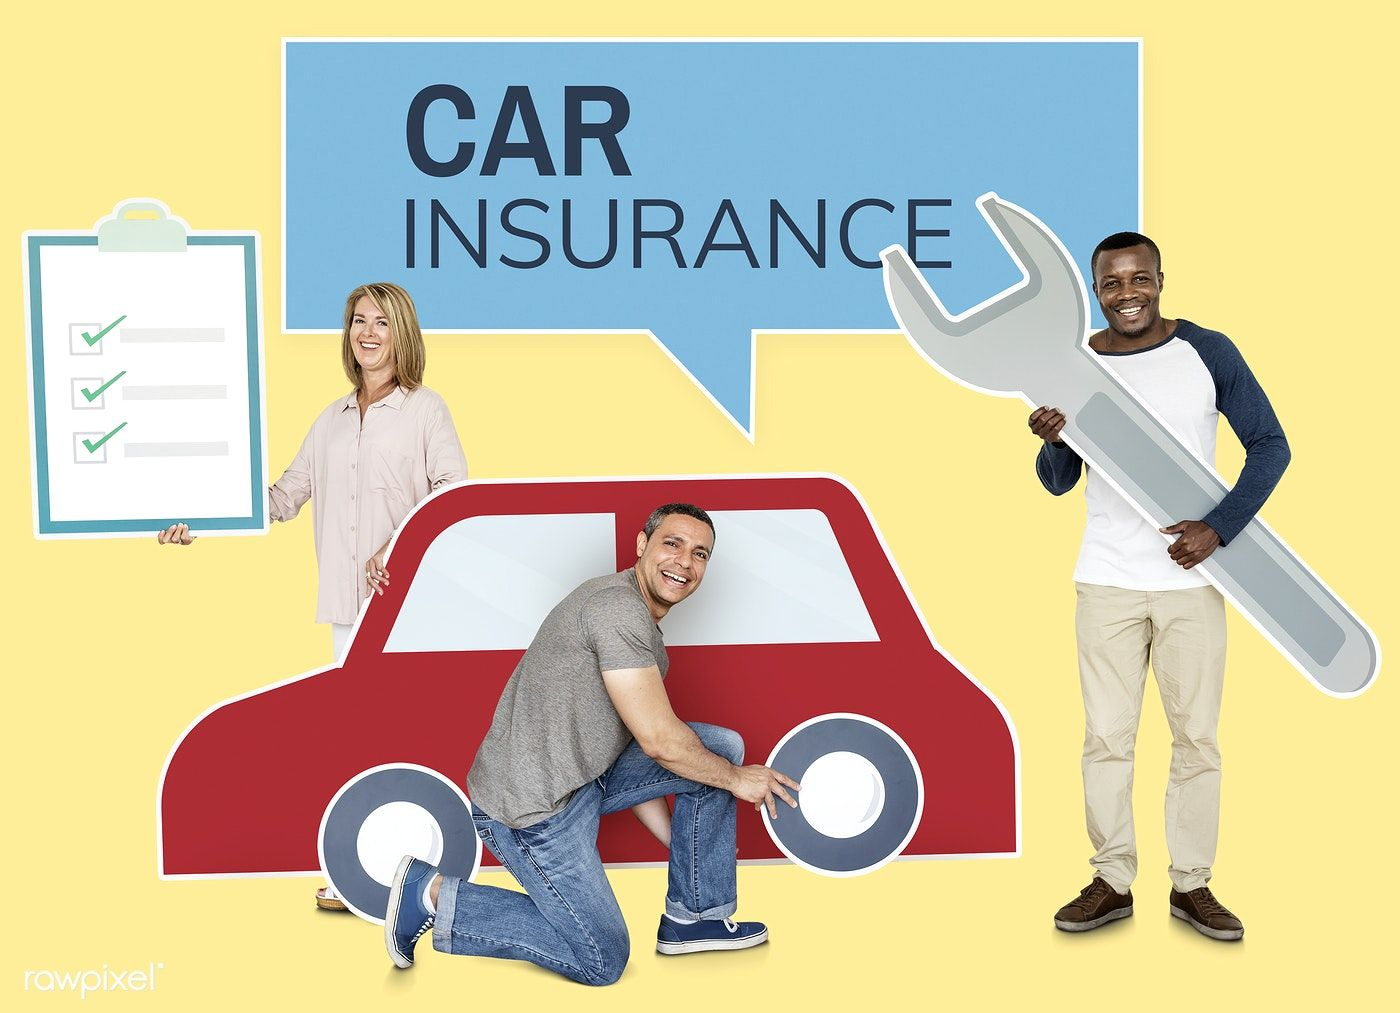 Download premium psd of People with a car insurance policy